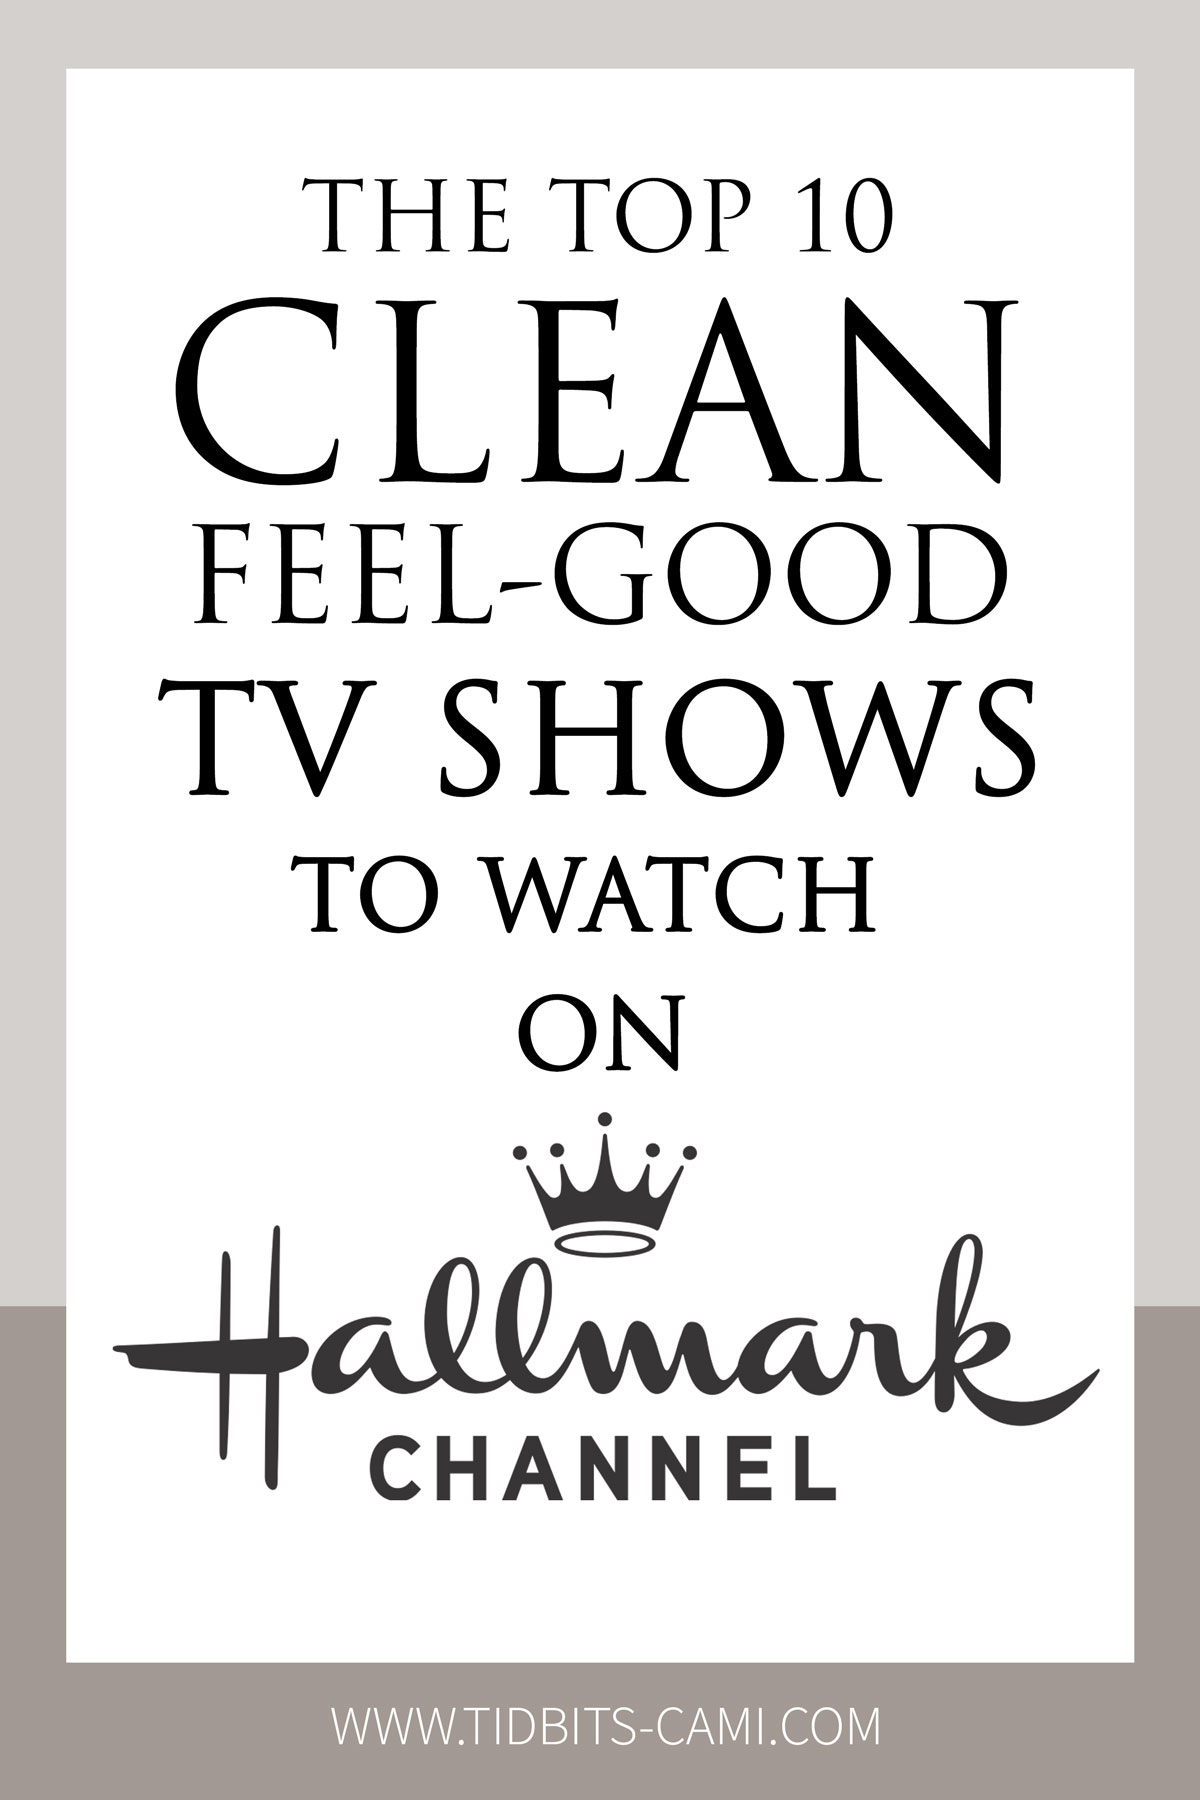 The Top 10 Clean Feel-Good TV Shows to Watch on Hallmark